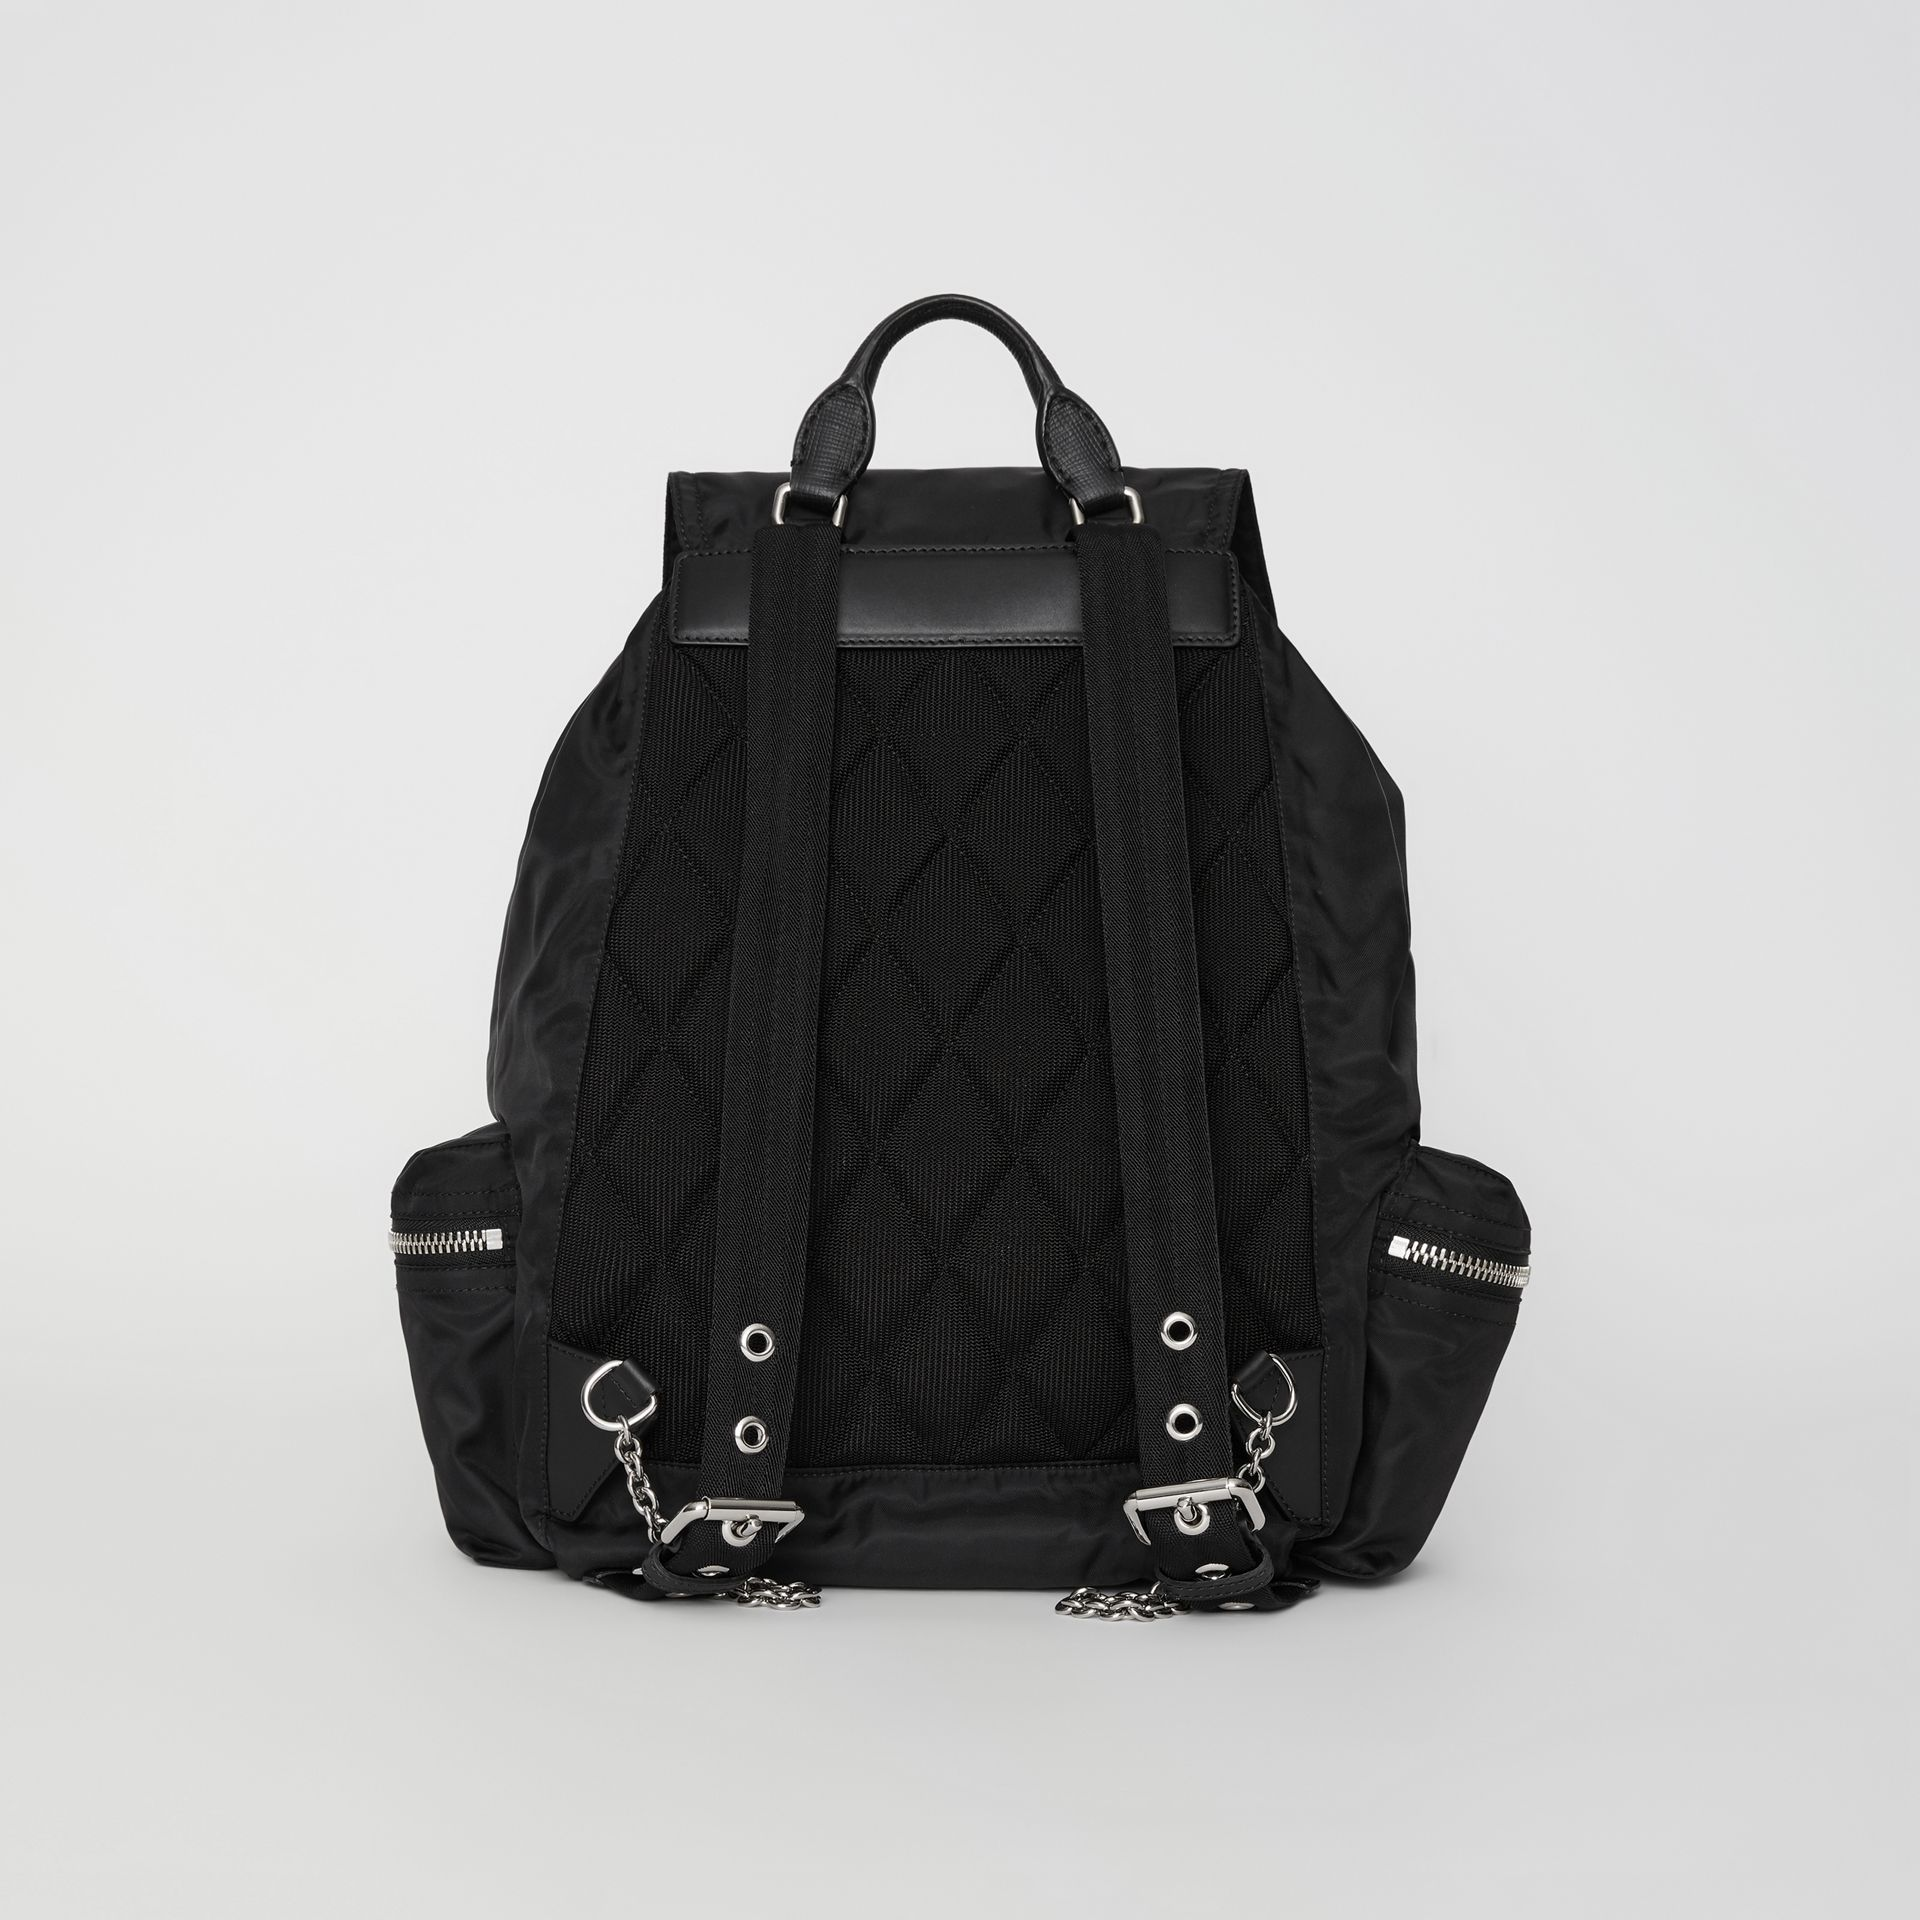 Grand sac The Rucksack en nylon technique et cuir (Noir) - Femme | Burberry Canada - photo de la galerie 7